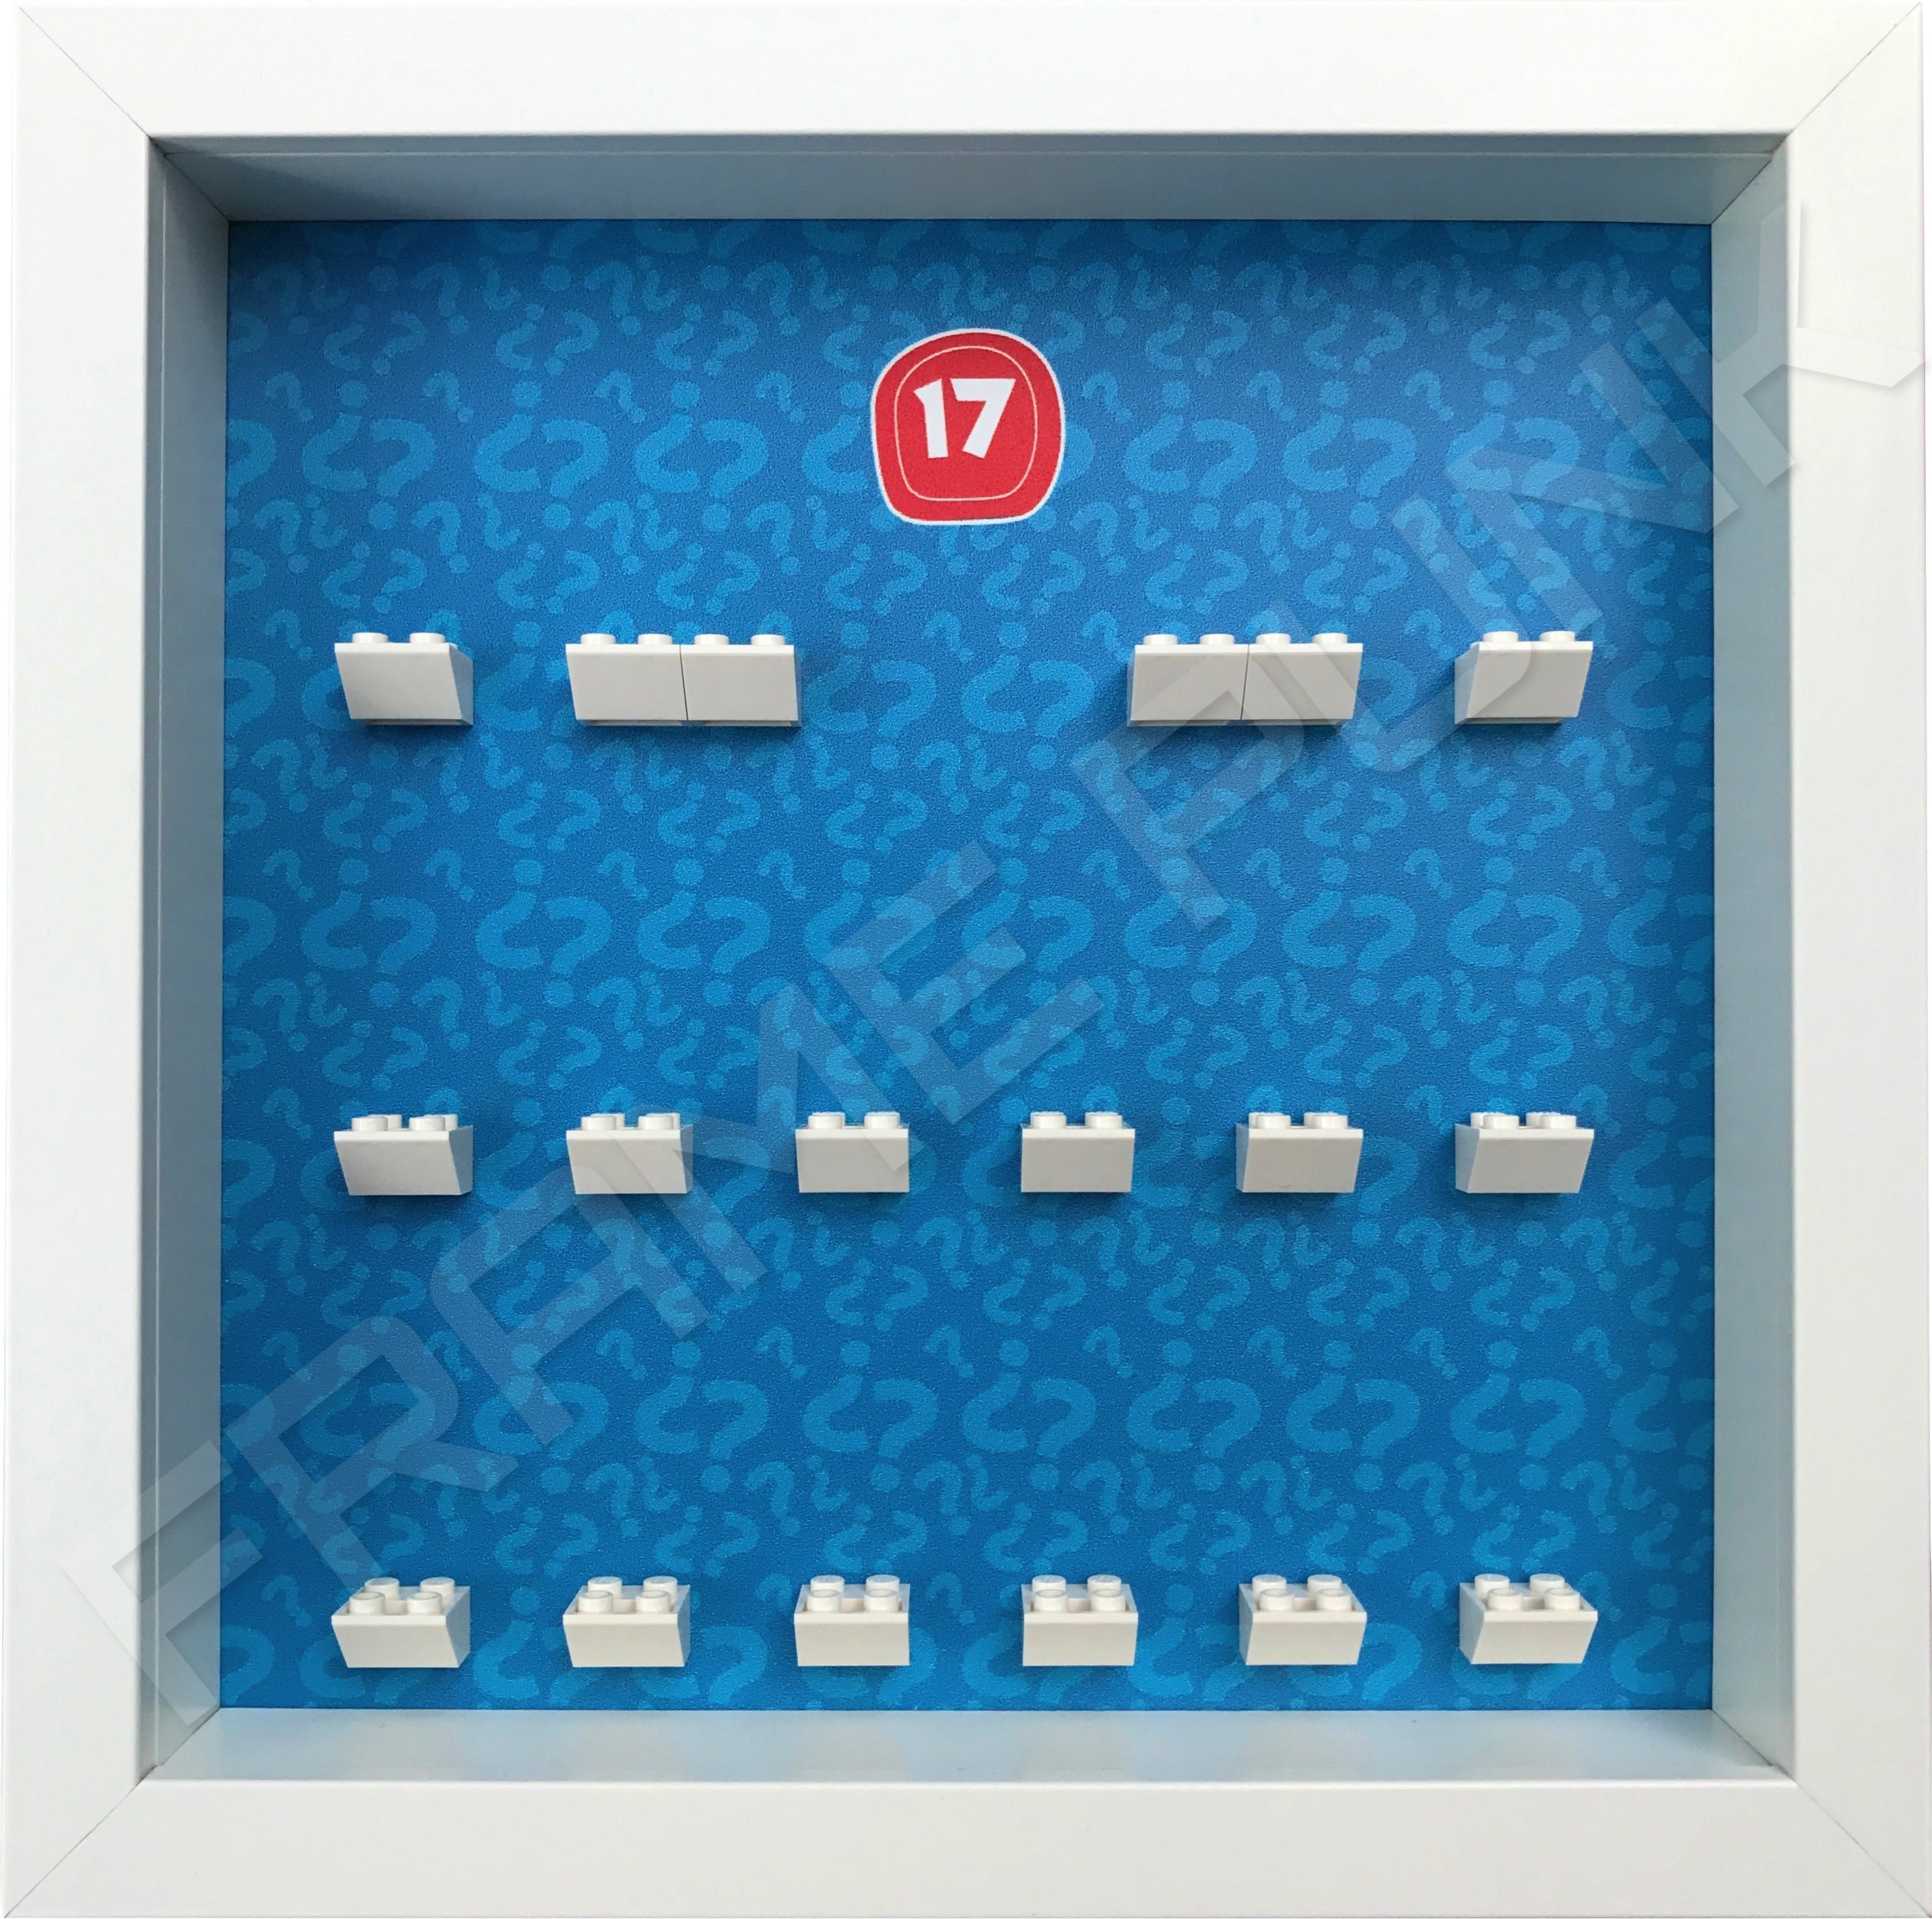 Lego minifigures series 17 display frame